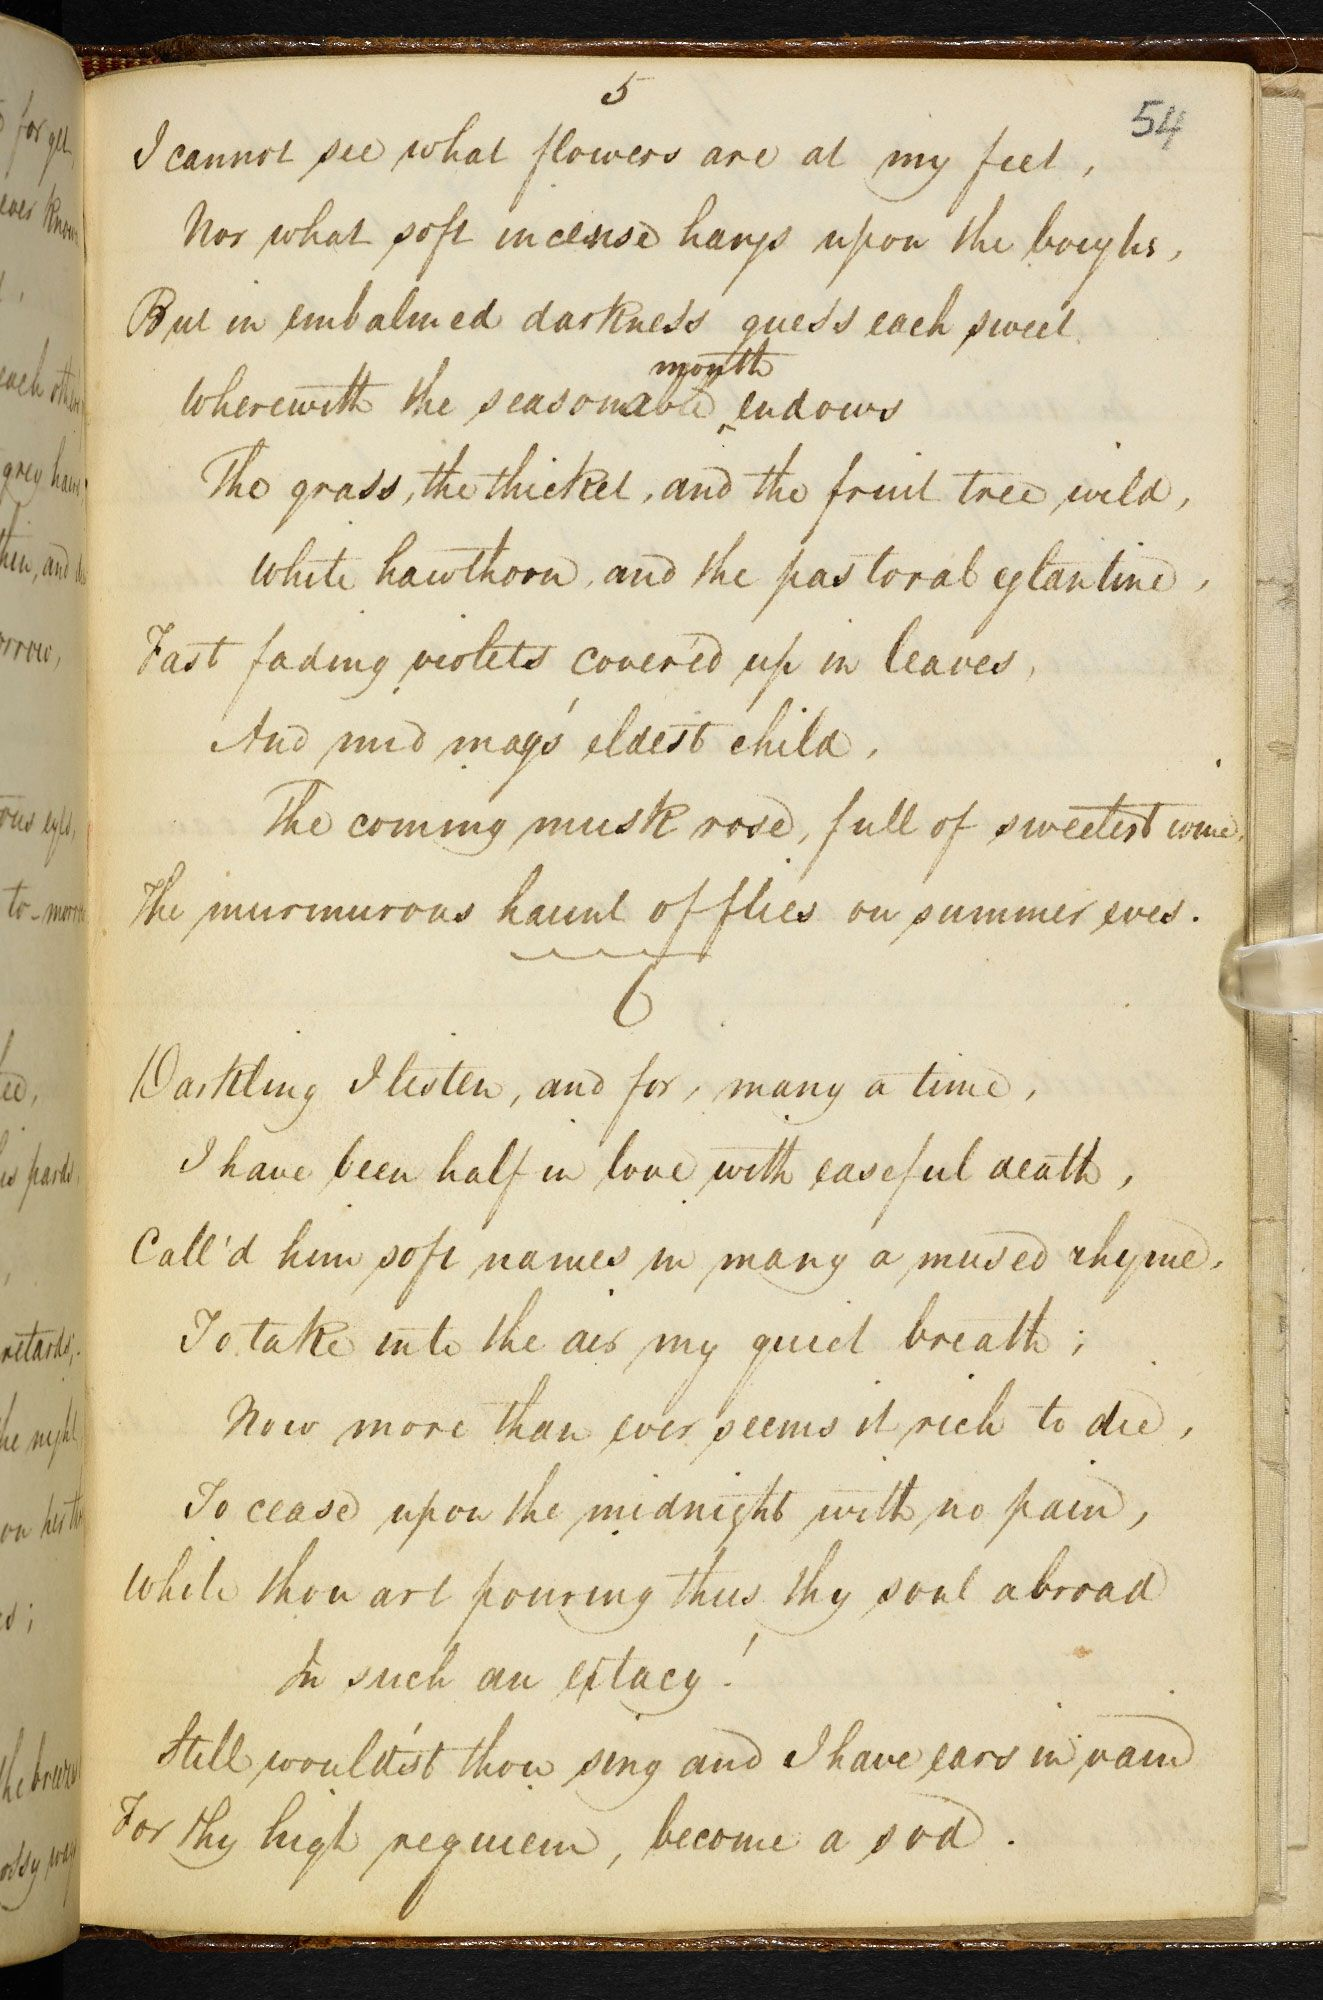 Pin By Lianna Schreiber On Poetry Family John Keat Handwriting Analysis Line Explanation Of The Poem Ode To Autumn Keats